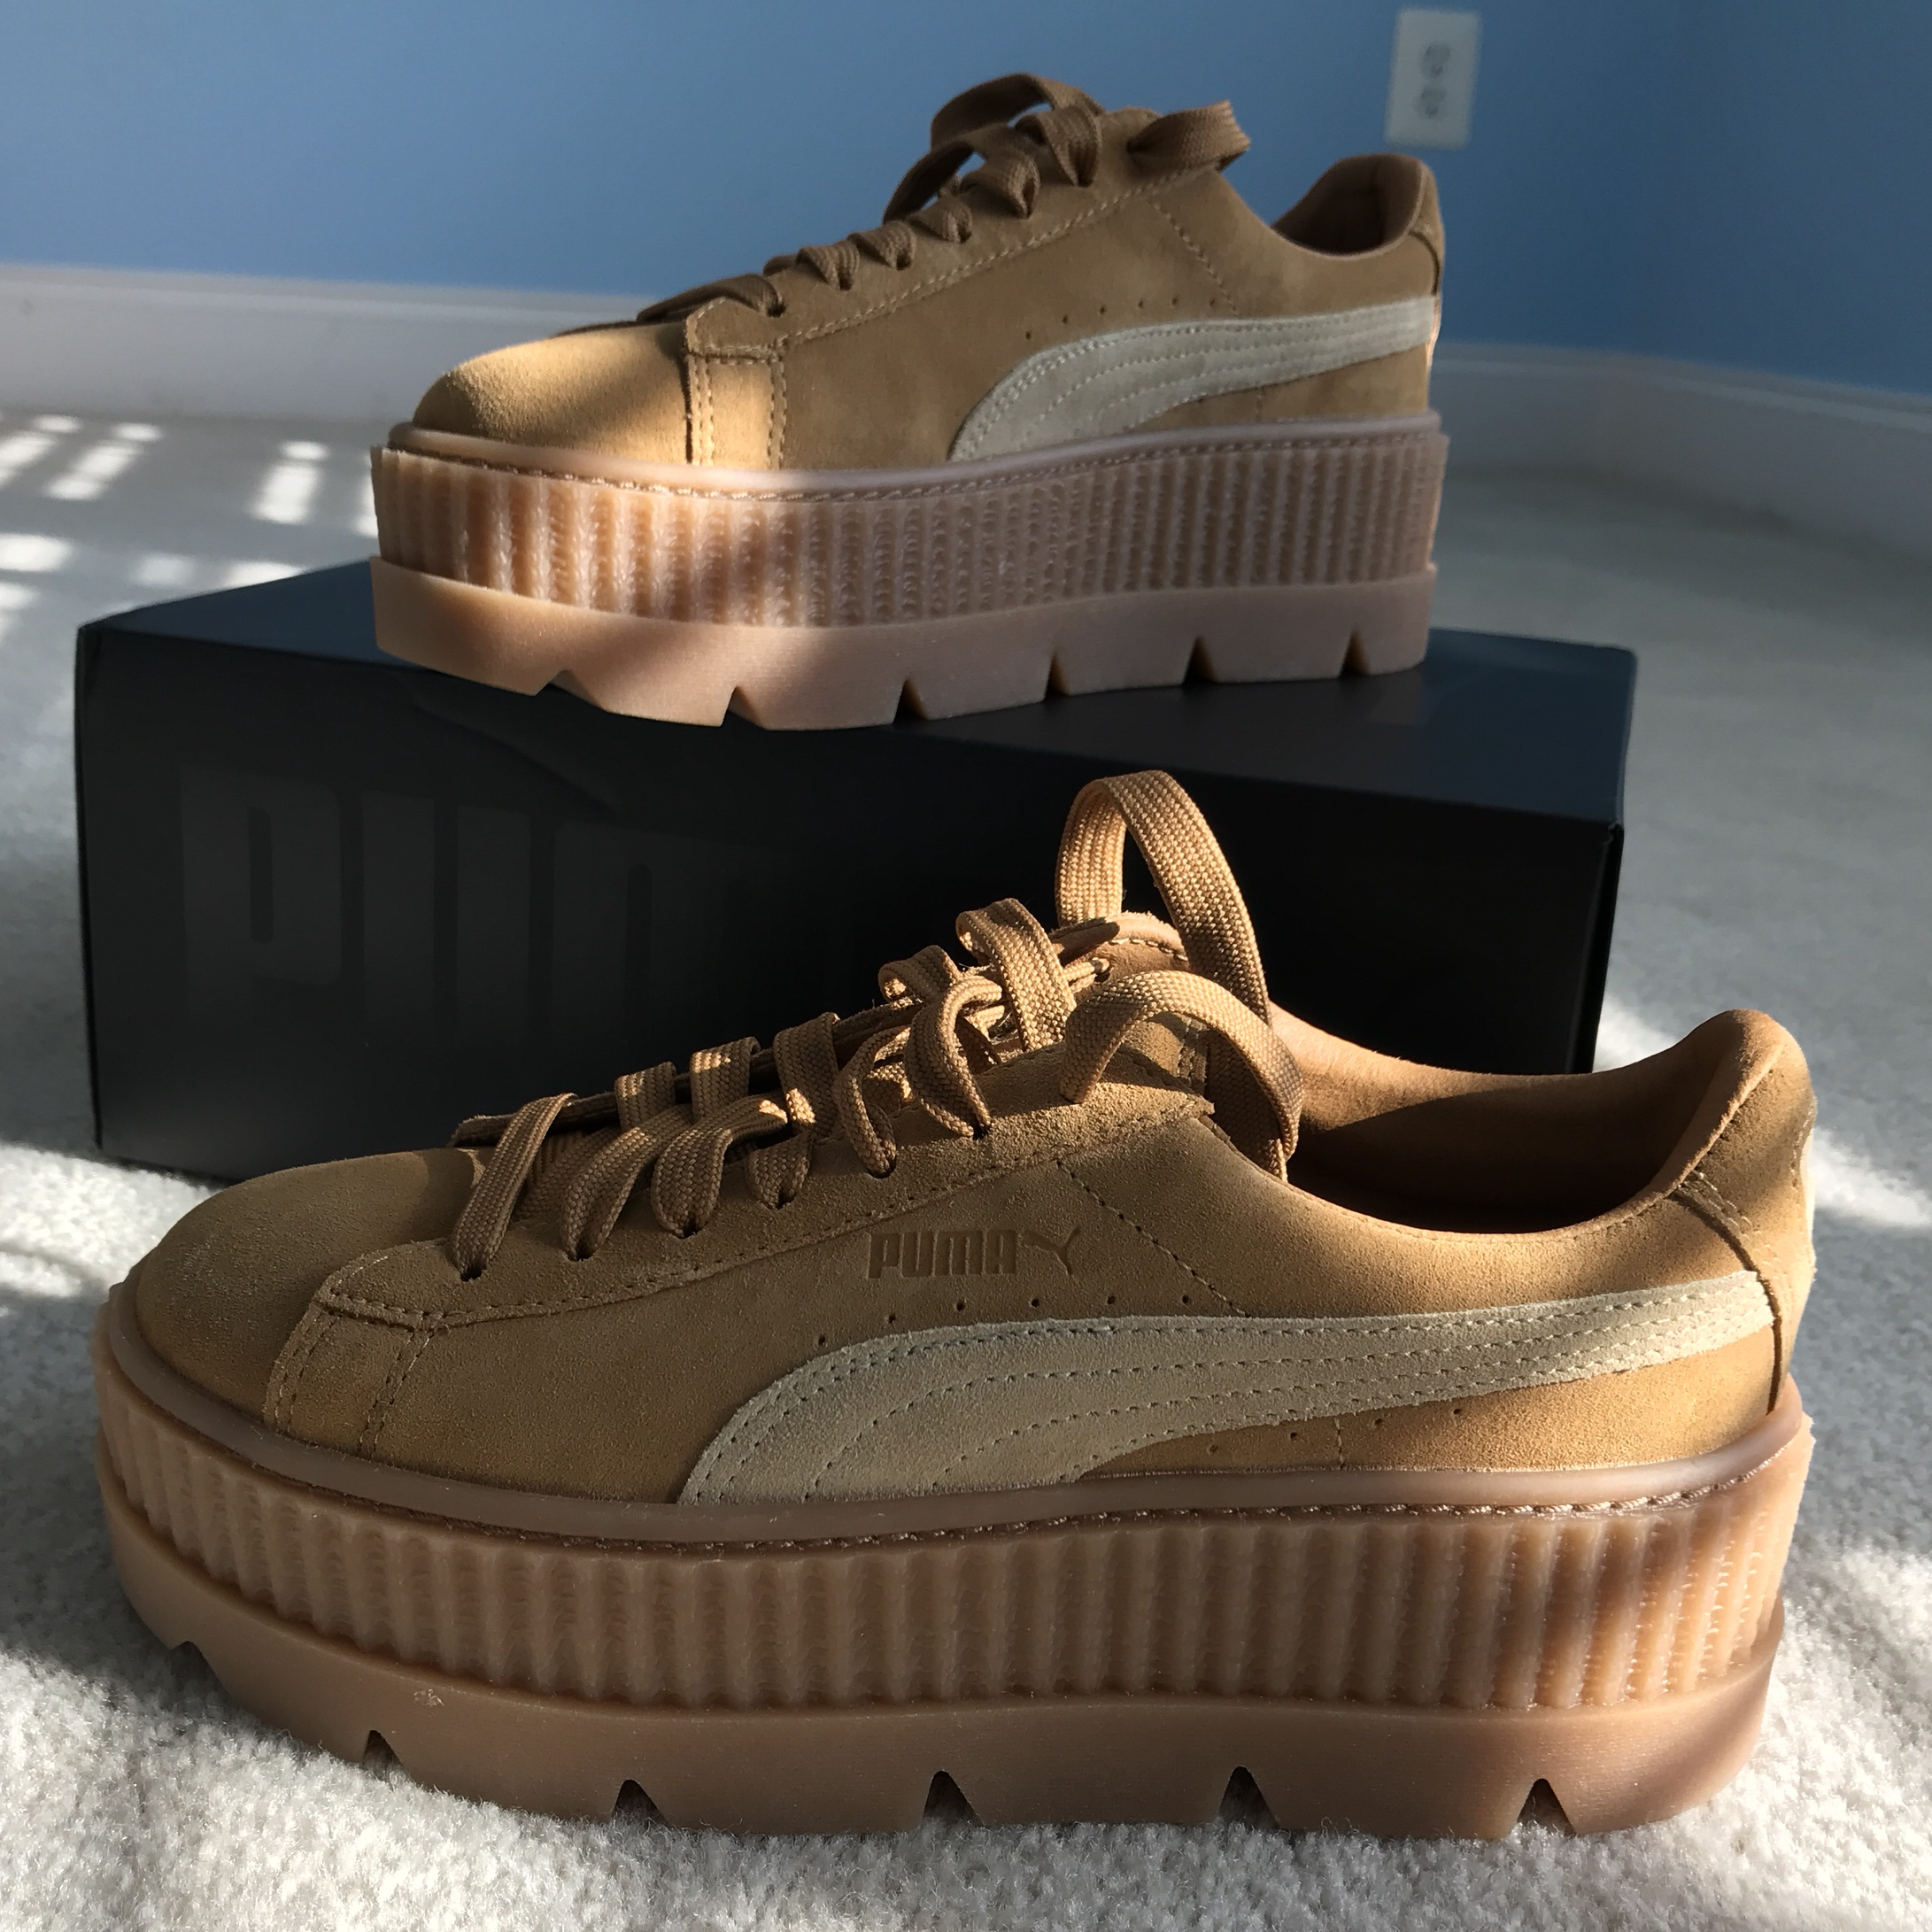 online store 7421d 873e8 PUMA X FENTY Cleated Creepers Golden Brown or Tan... - Depop